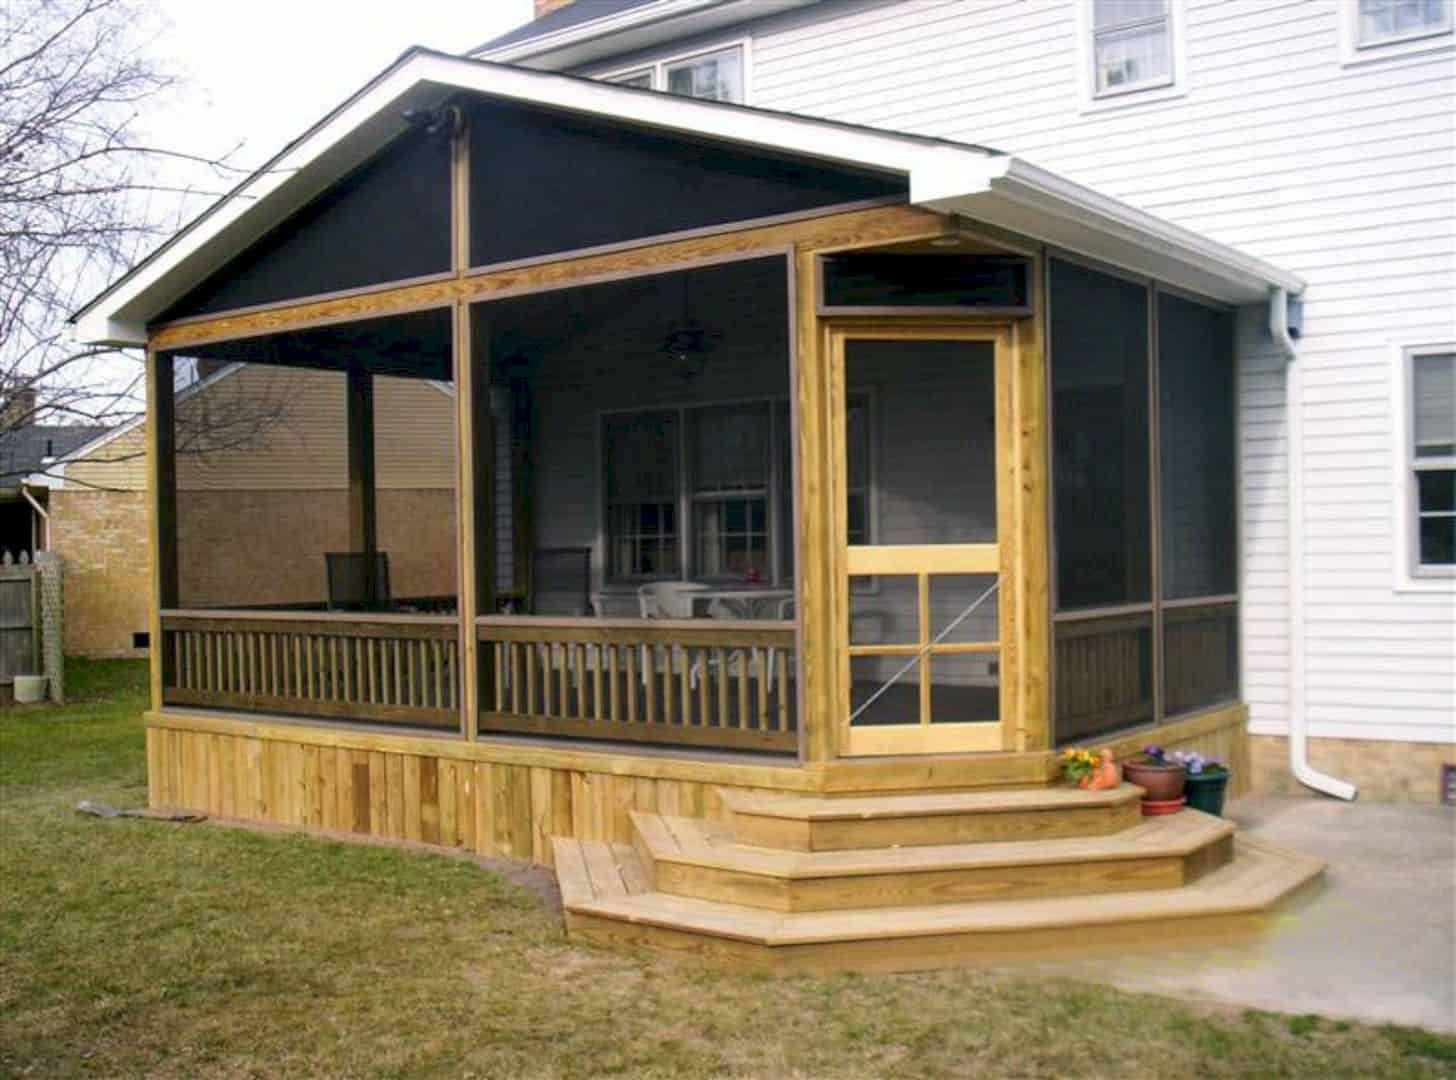 8 Ways To Have More Appealing Screened Porch Deck Futurist Architecture Mobile Home Porch Porch Design Screened Porch Designs